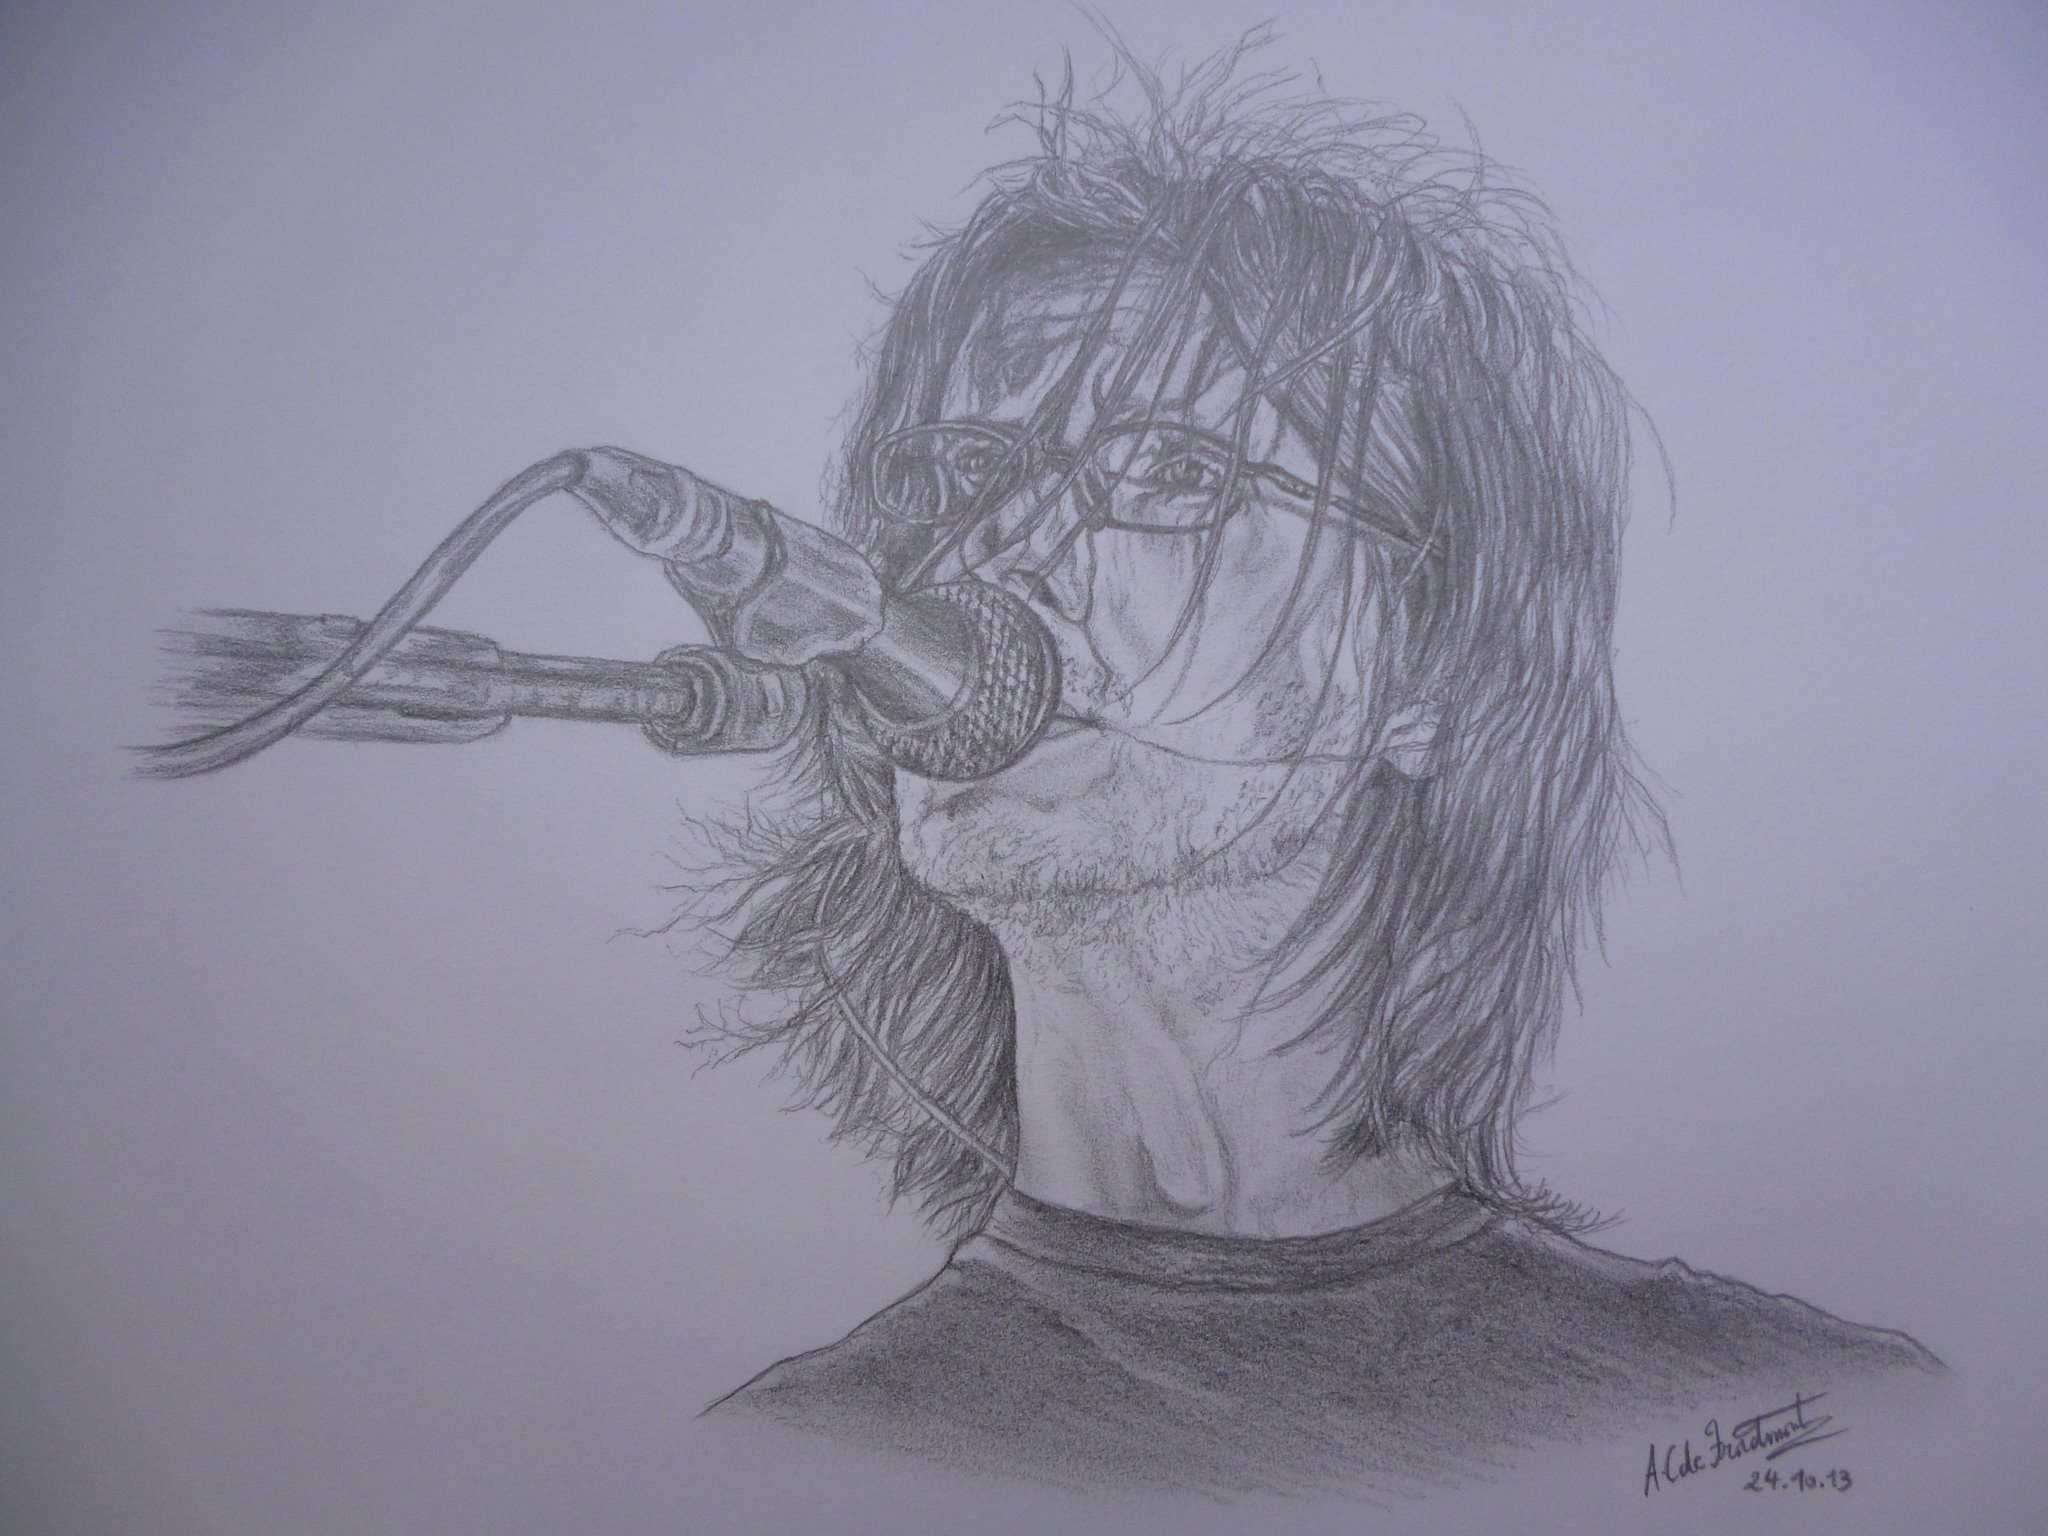 Steven Wilson By The Very Talented Anne Catherine De Froidmont